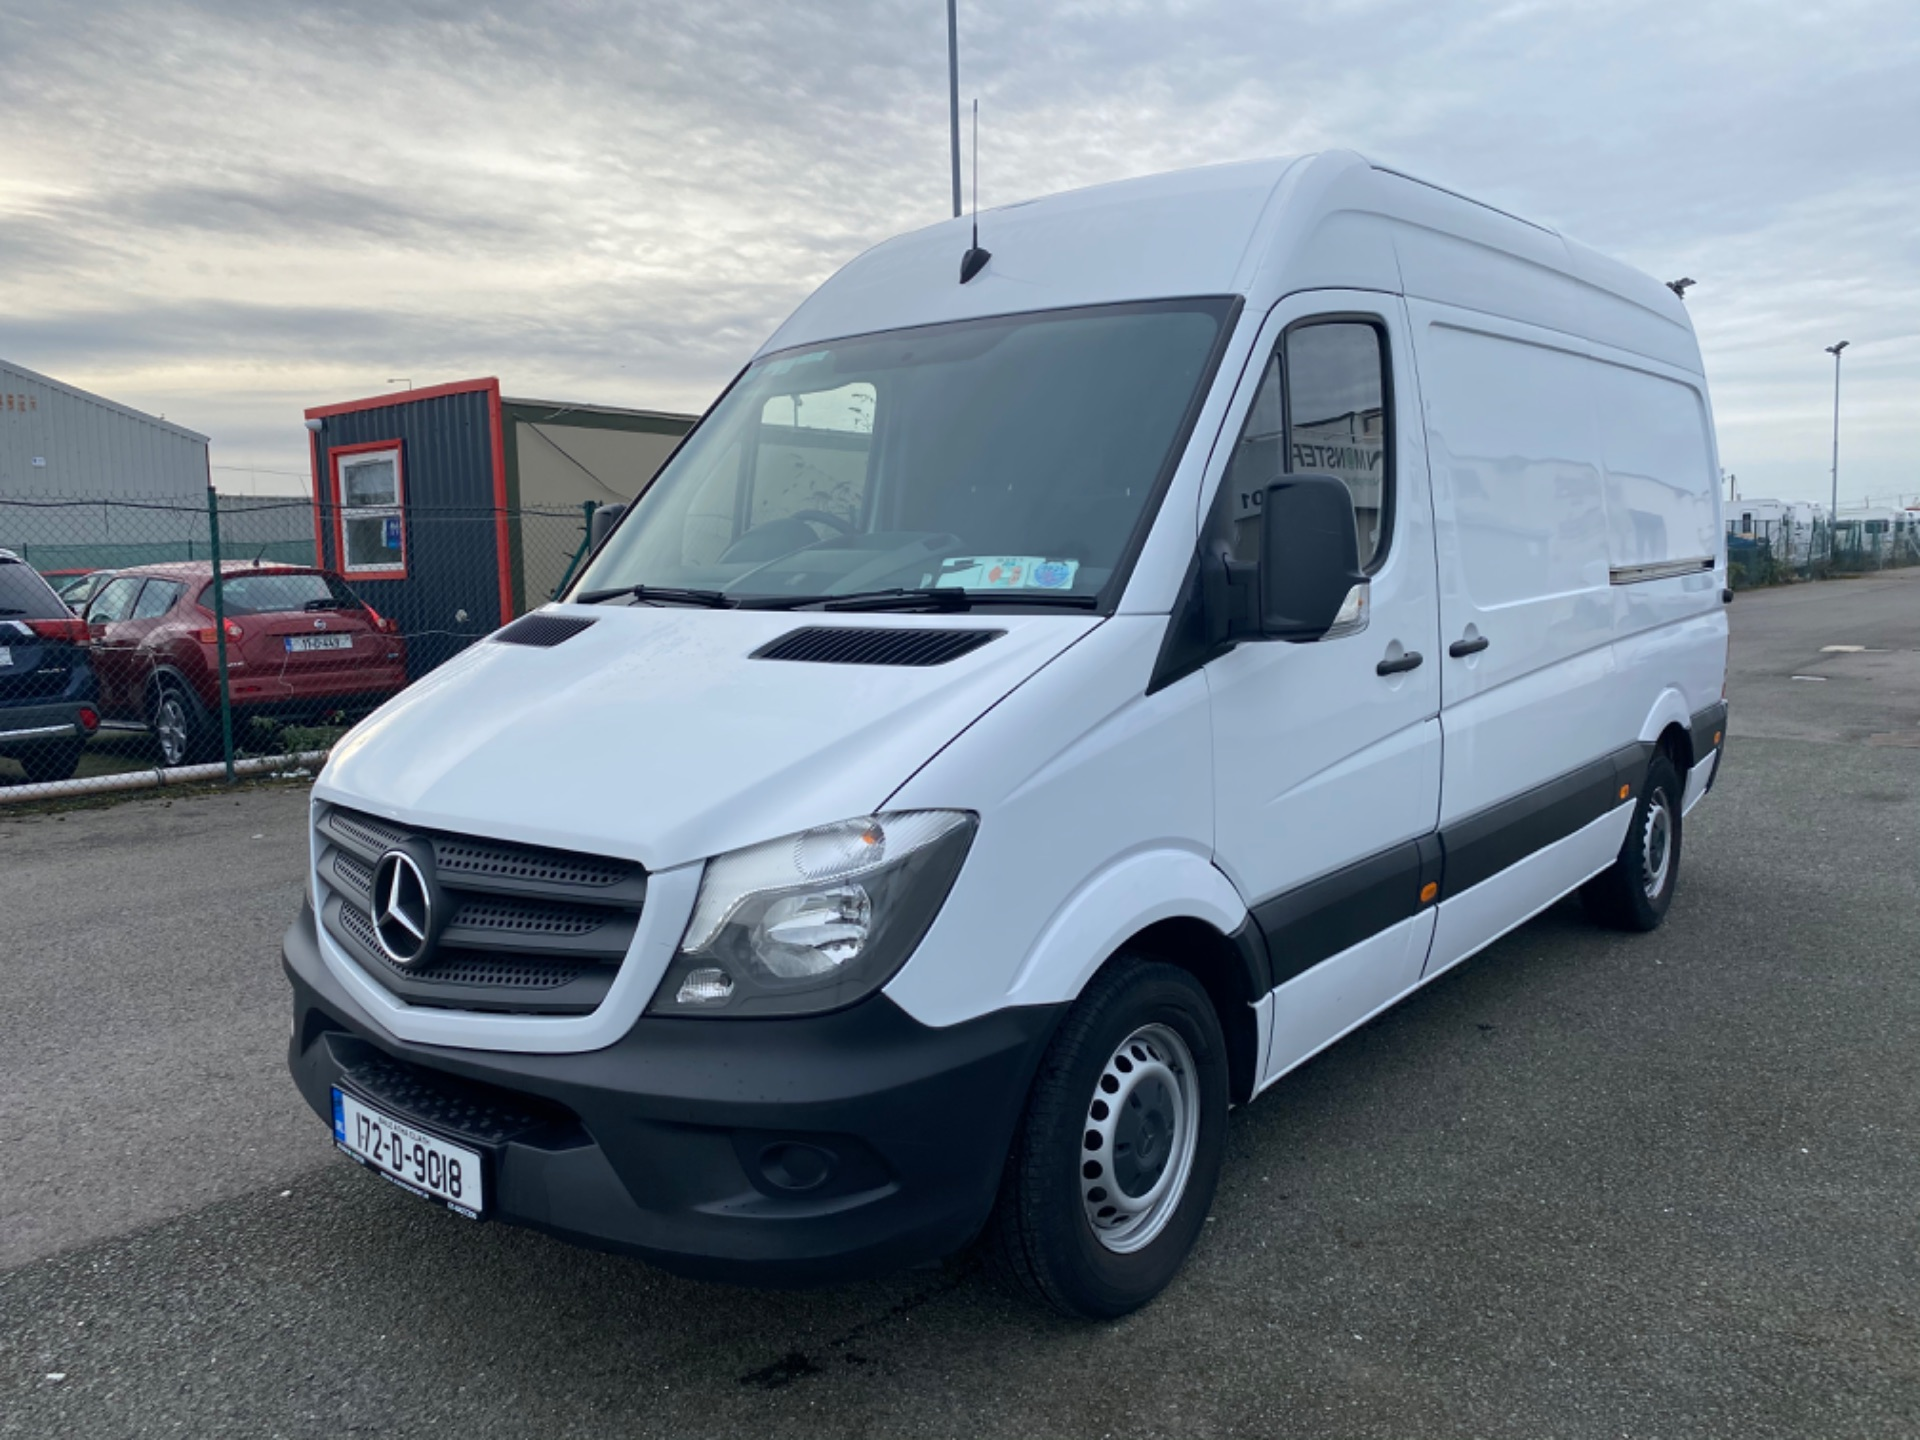 2017 Mercedes-Benz Sprinter 314/36 EU6 6DR (172D9018) Thumbnail 3